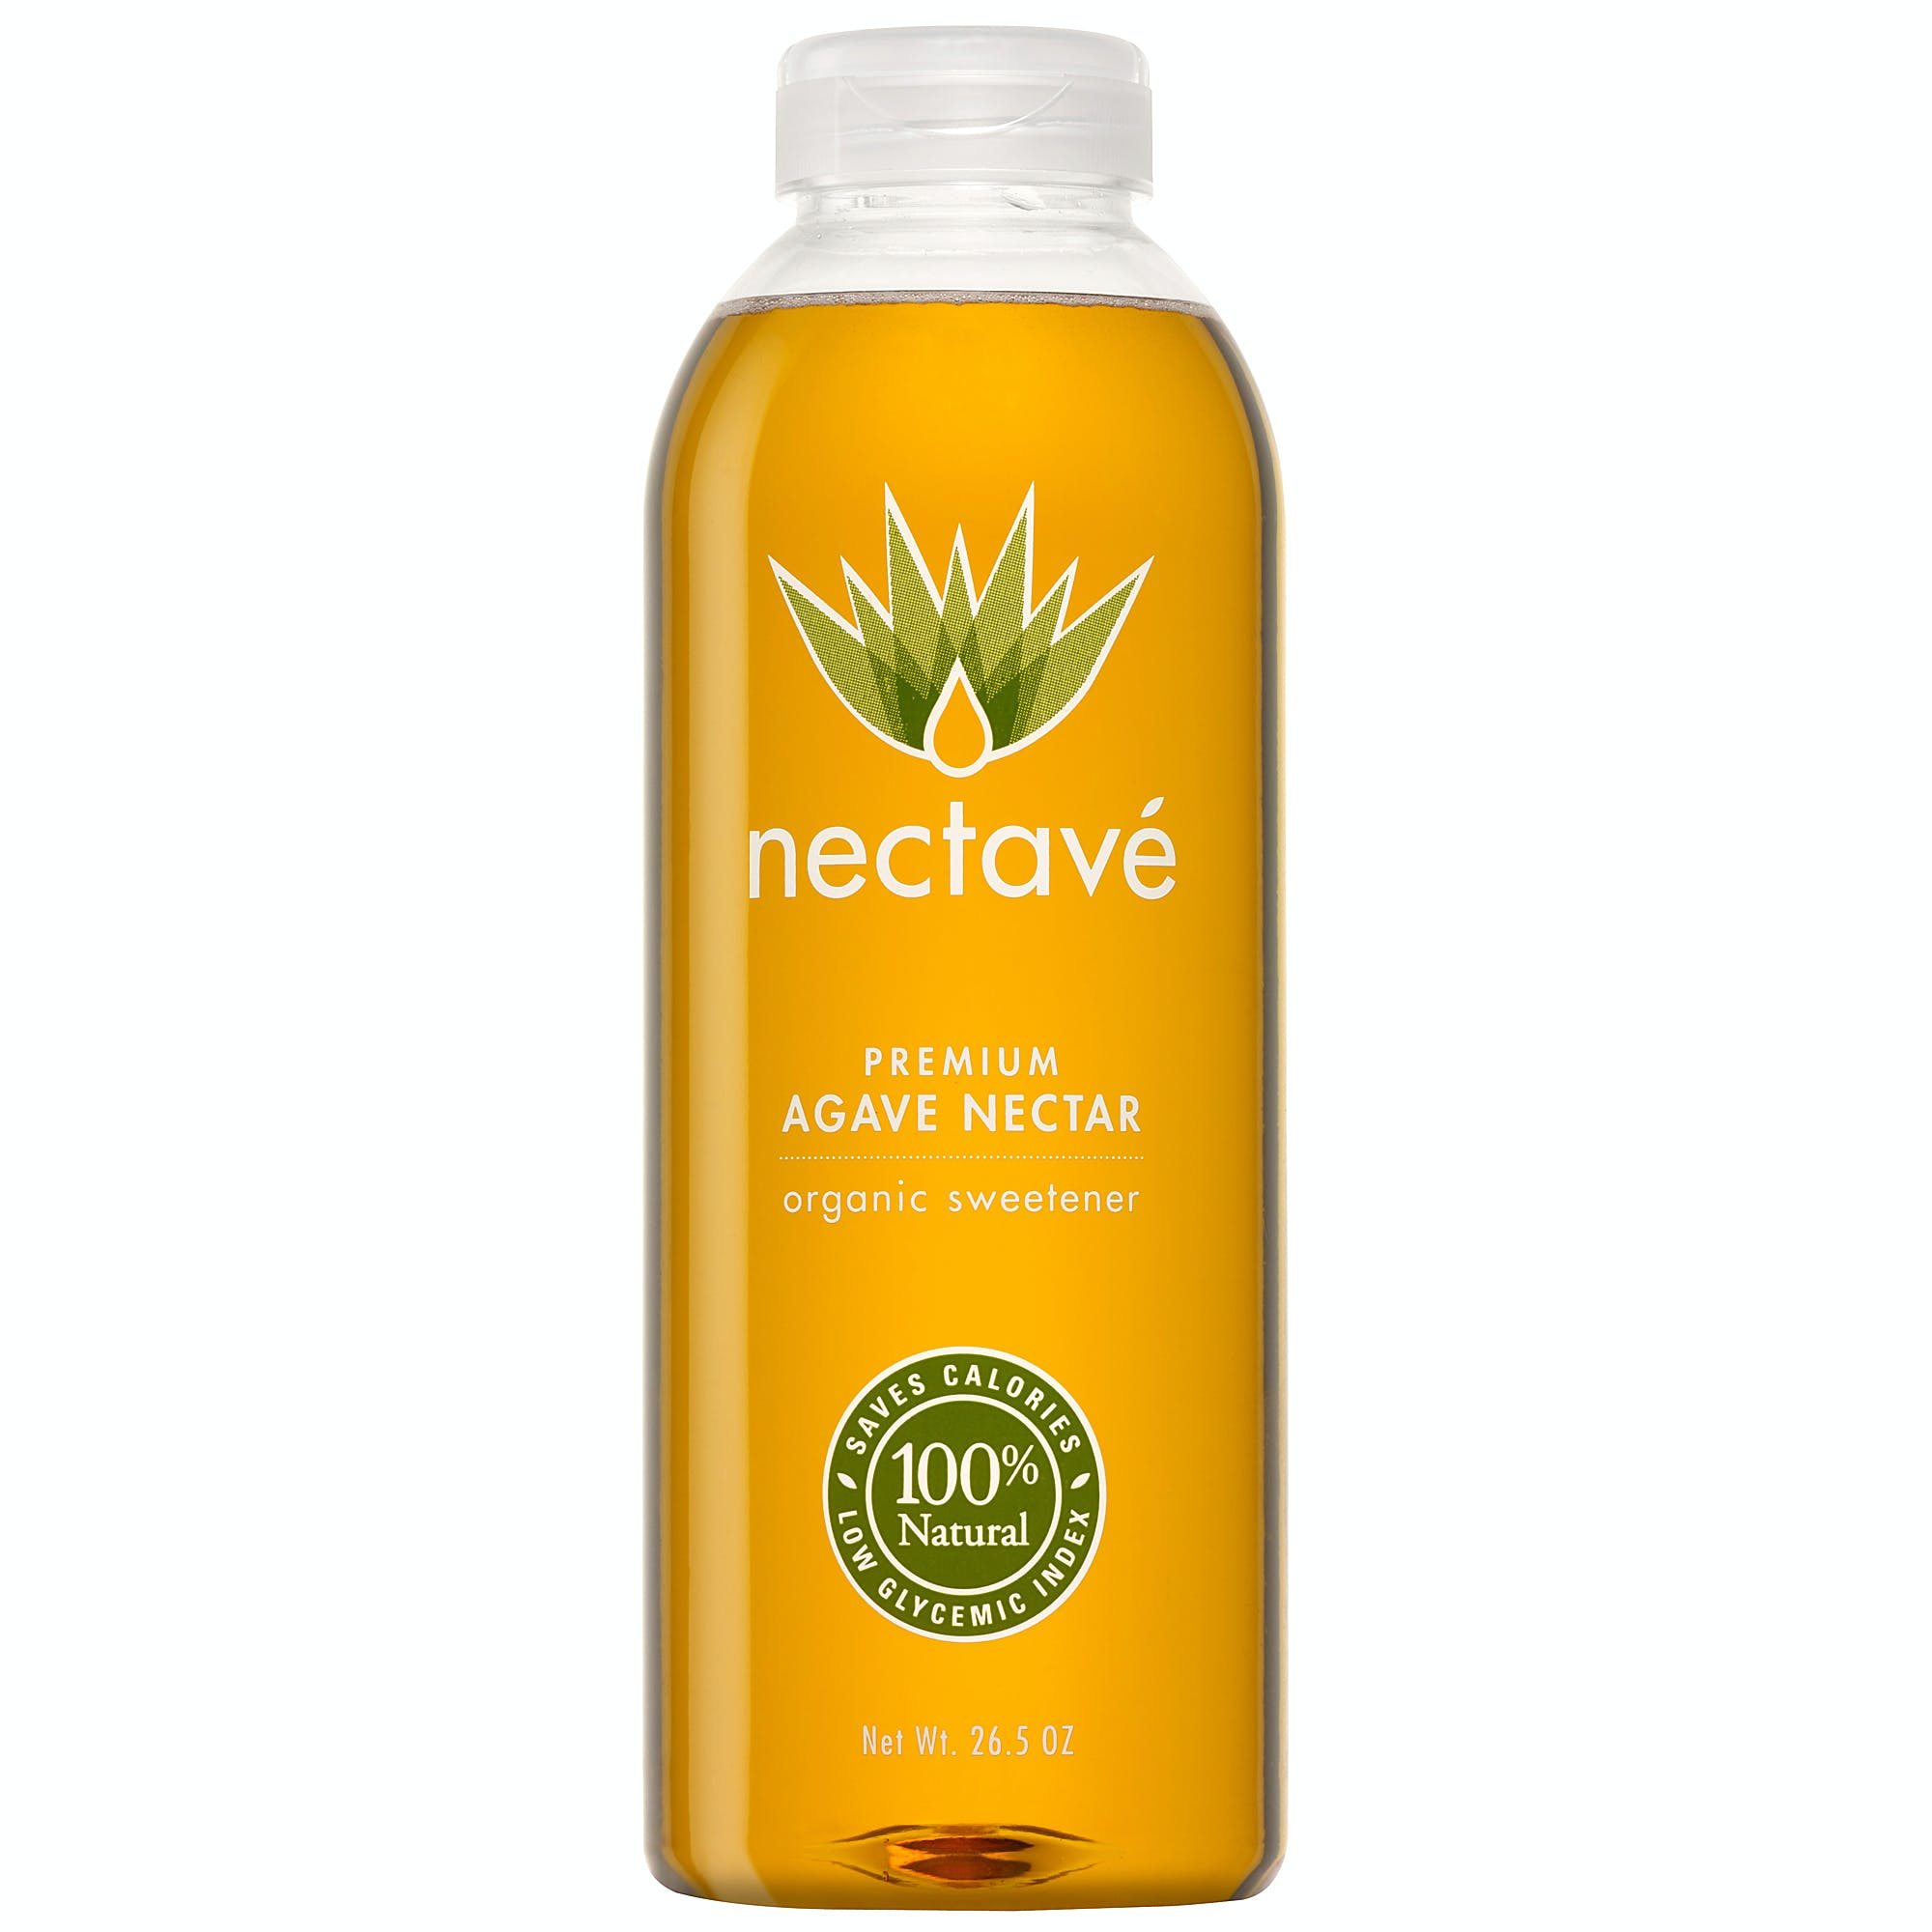 Organic Agave Nectar Boston Round Agave sweetener sold by M5 Corporation